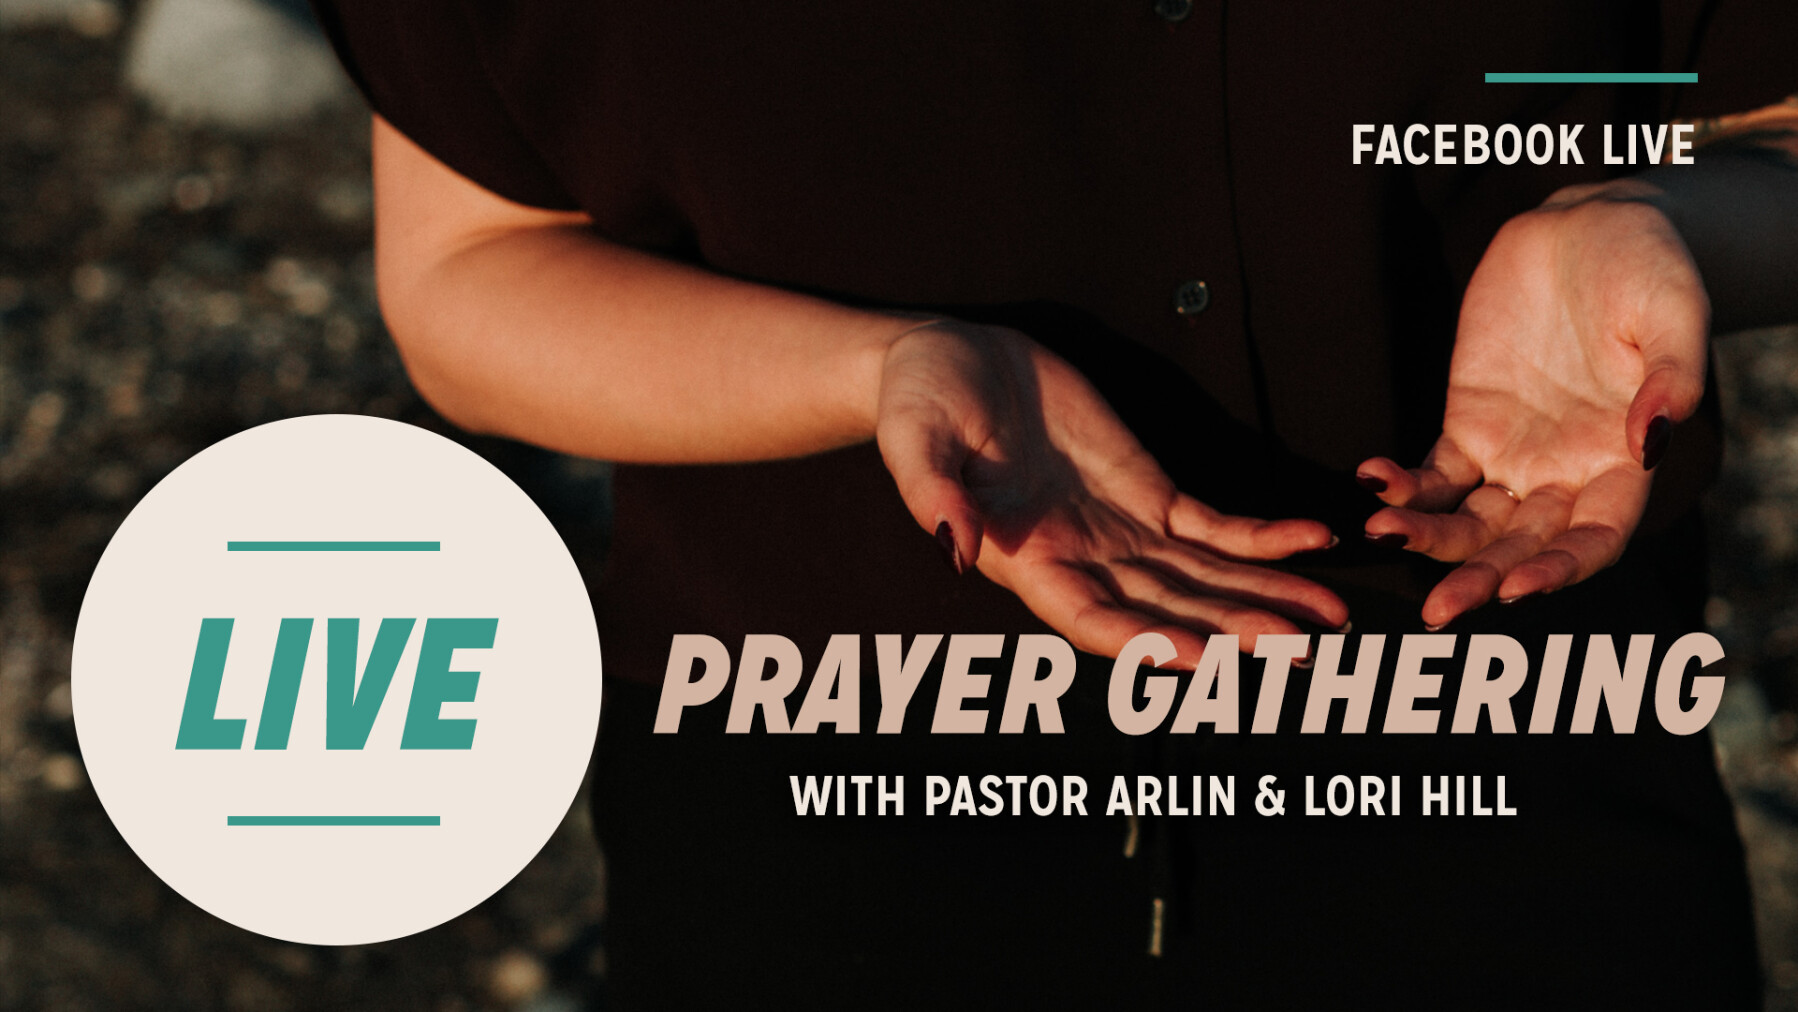 LIVE Prayer with Pastor Arlin & Lori